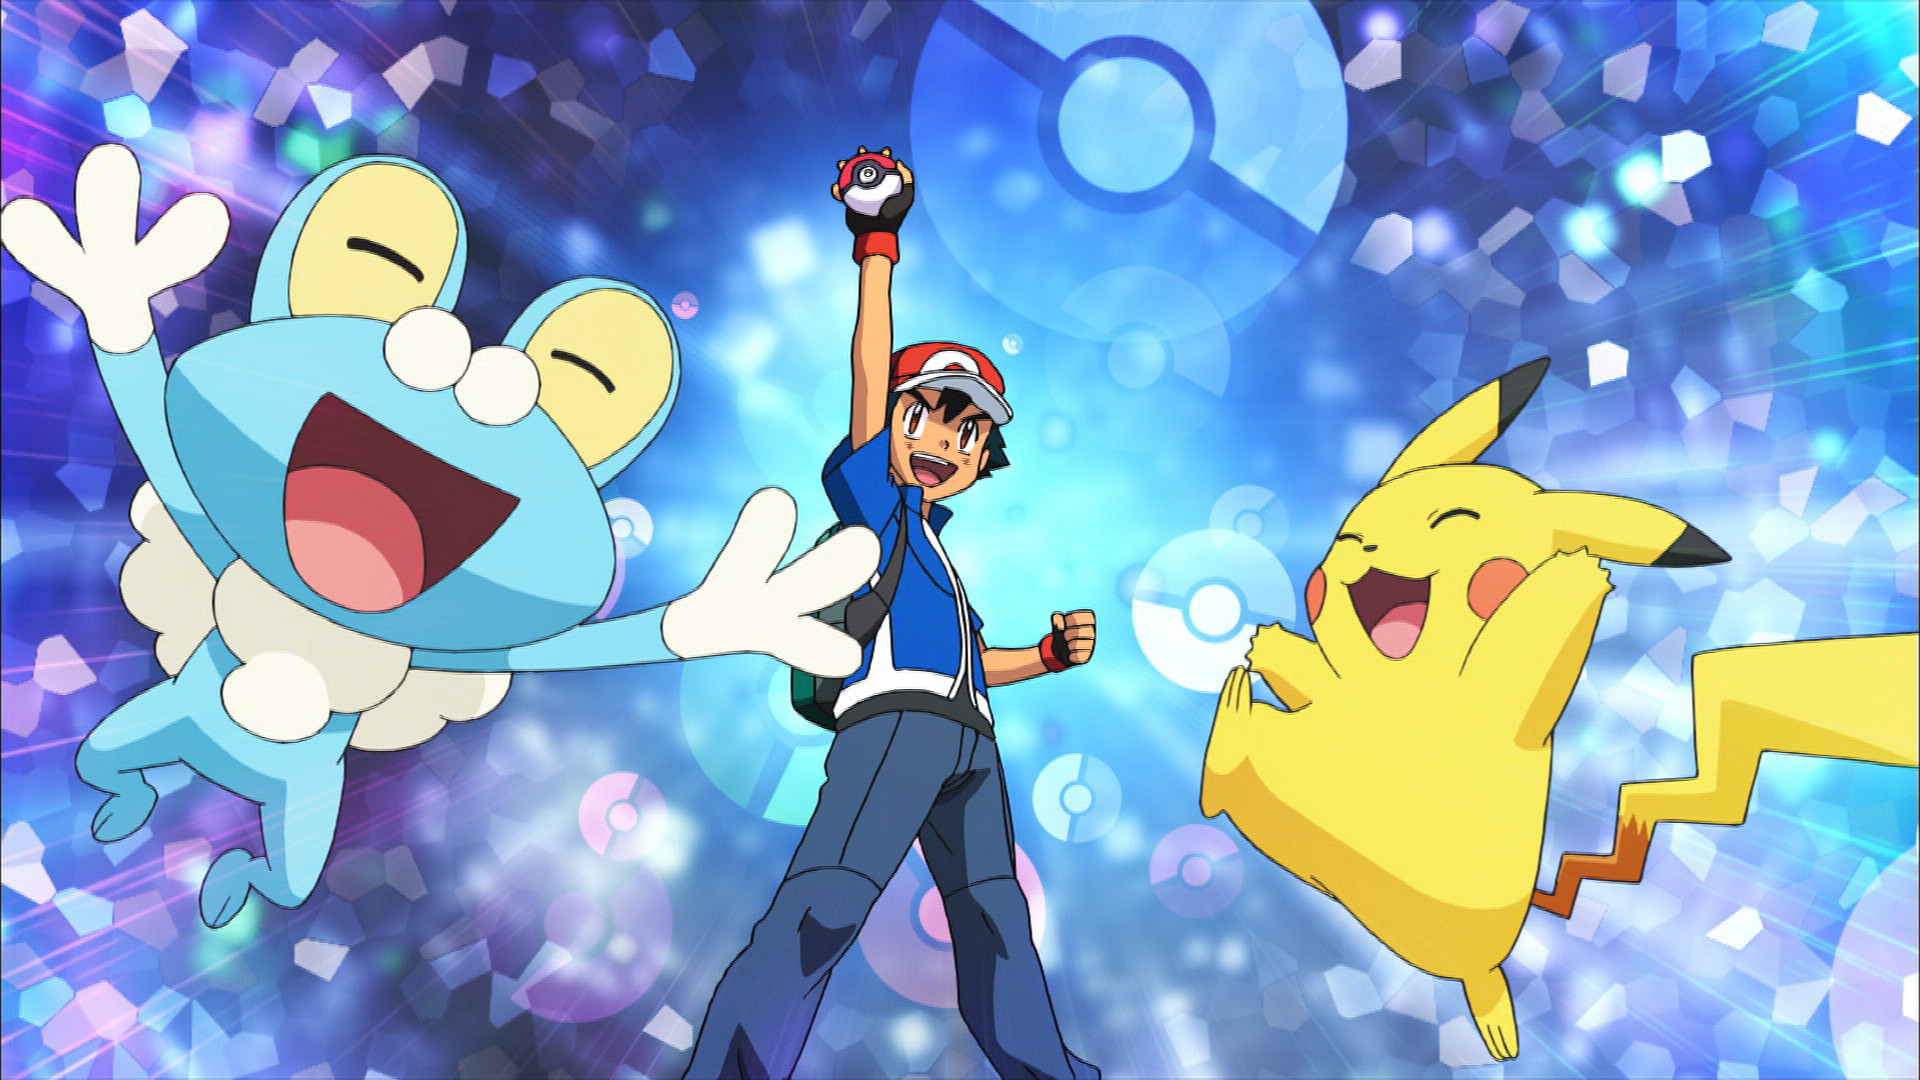 1920x1080 Pokemon HD Wallpaper Wide ready to download just for FREE from our  beautiful Pokemon HD Wallpapers